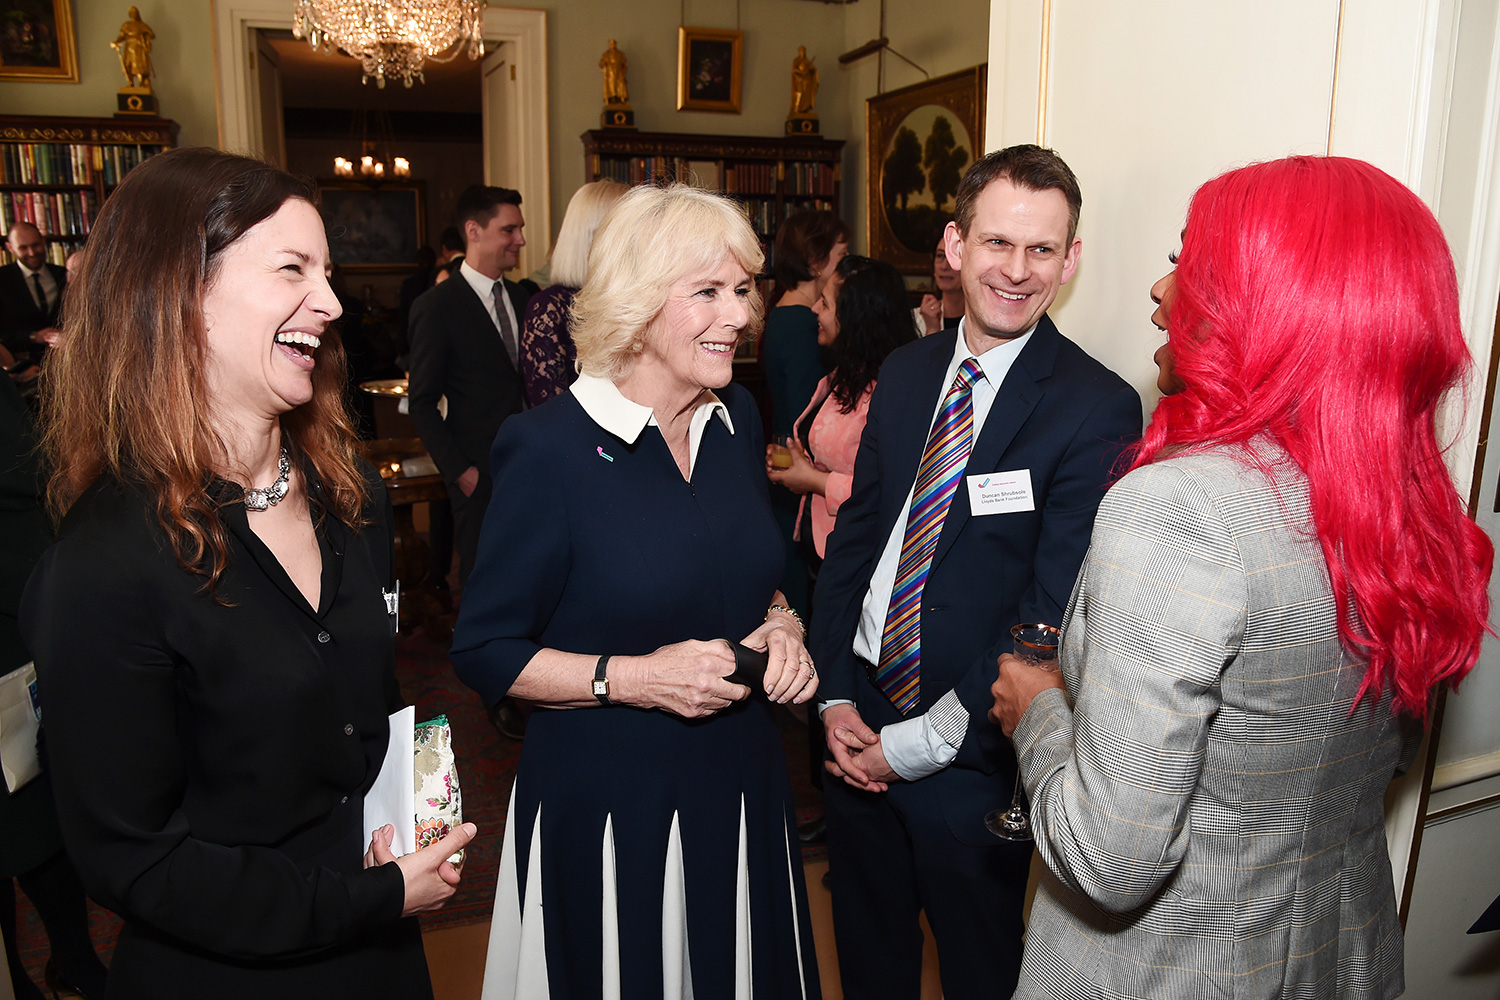 Camilla, Duchess of Cornwall meets CEO of SafeLives Suzanne Jacob (L), Duncan Shrubsole and Jennifer Steele during a reception to acknowledge the 15th anniversary of domestic abuse charity SafeLives at Clarence House on February 12, 2020 in London, England